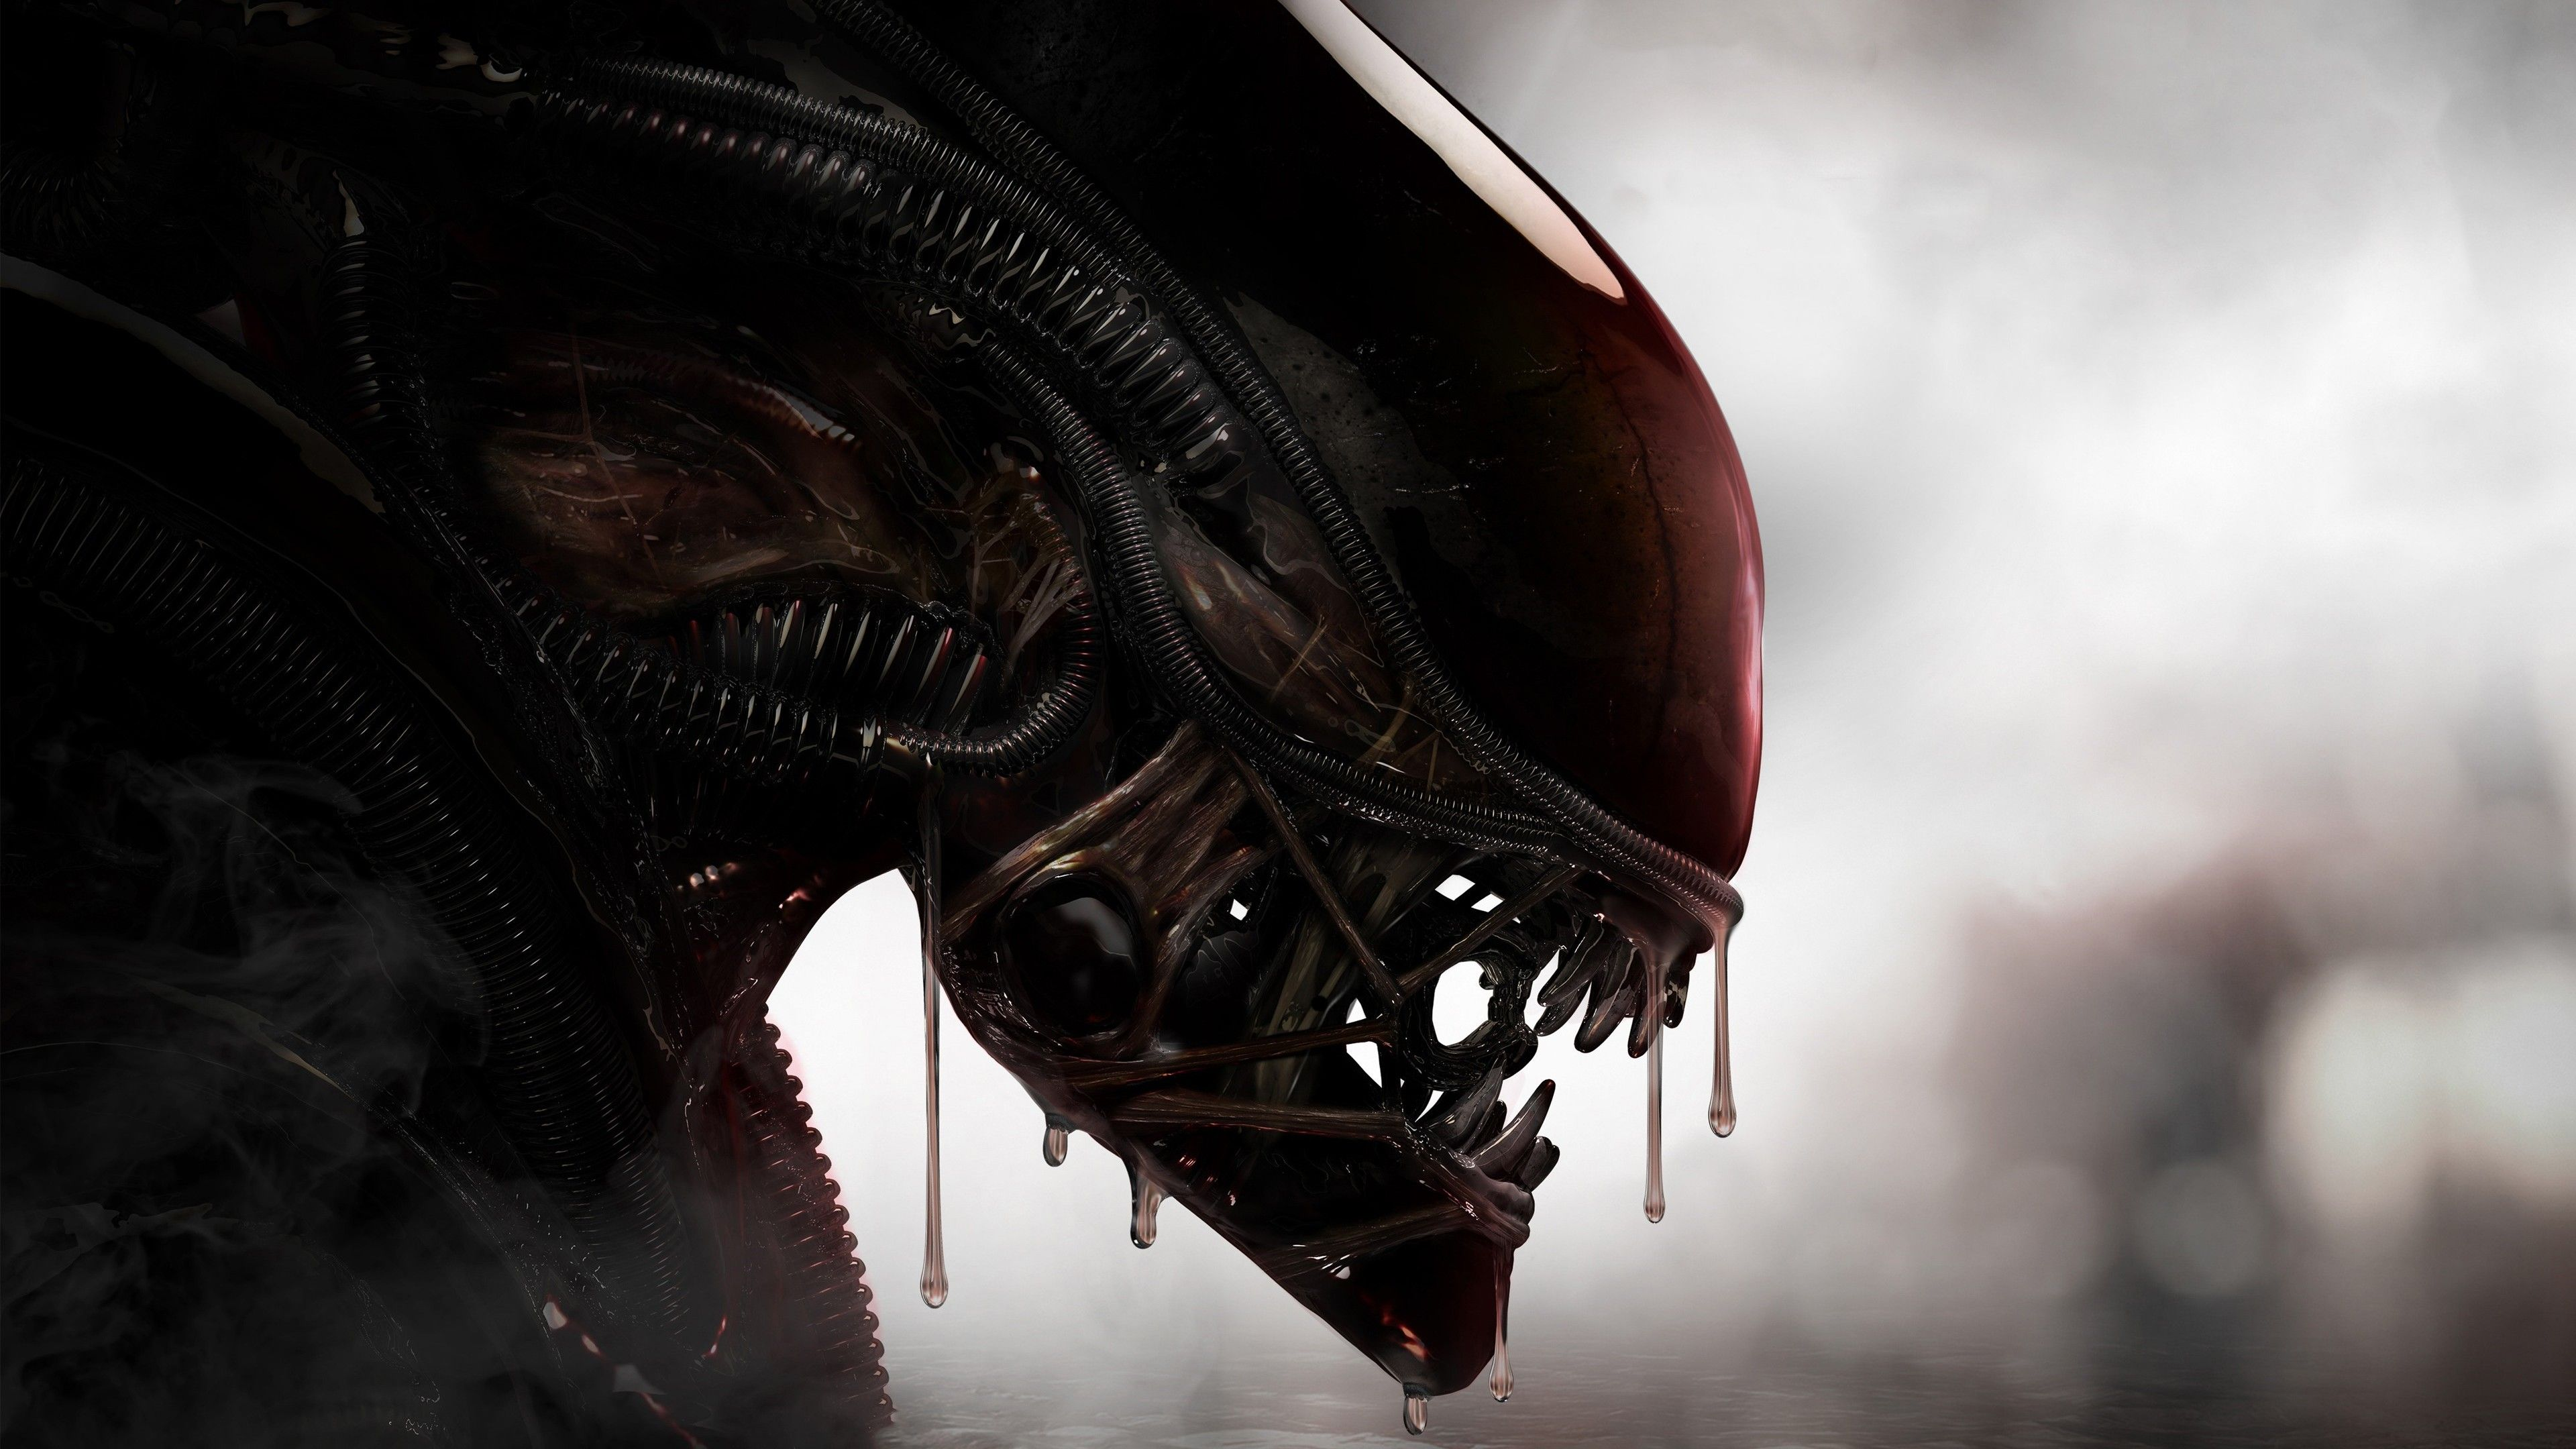 Aliens Xenomorph Creature 4k Hd Wallpapers Digital Art Wallpapers Creature Wallpapers Artist Wallpapers Alien Wallpapers Xenomorph Culture Art Aliens Movie